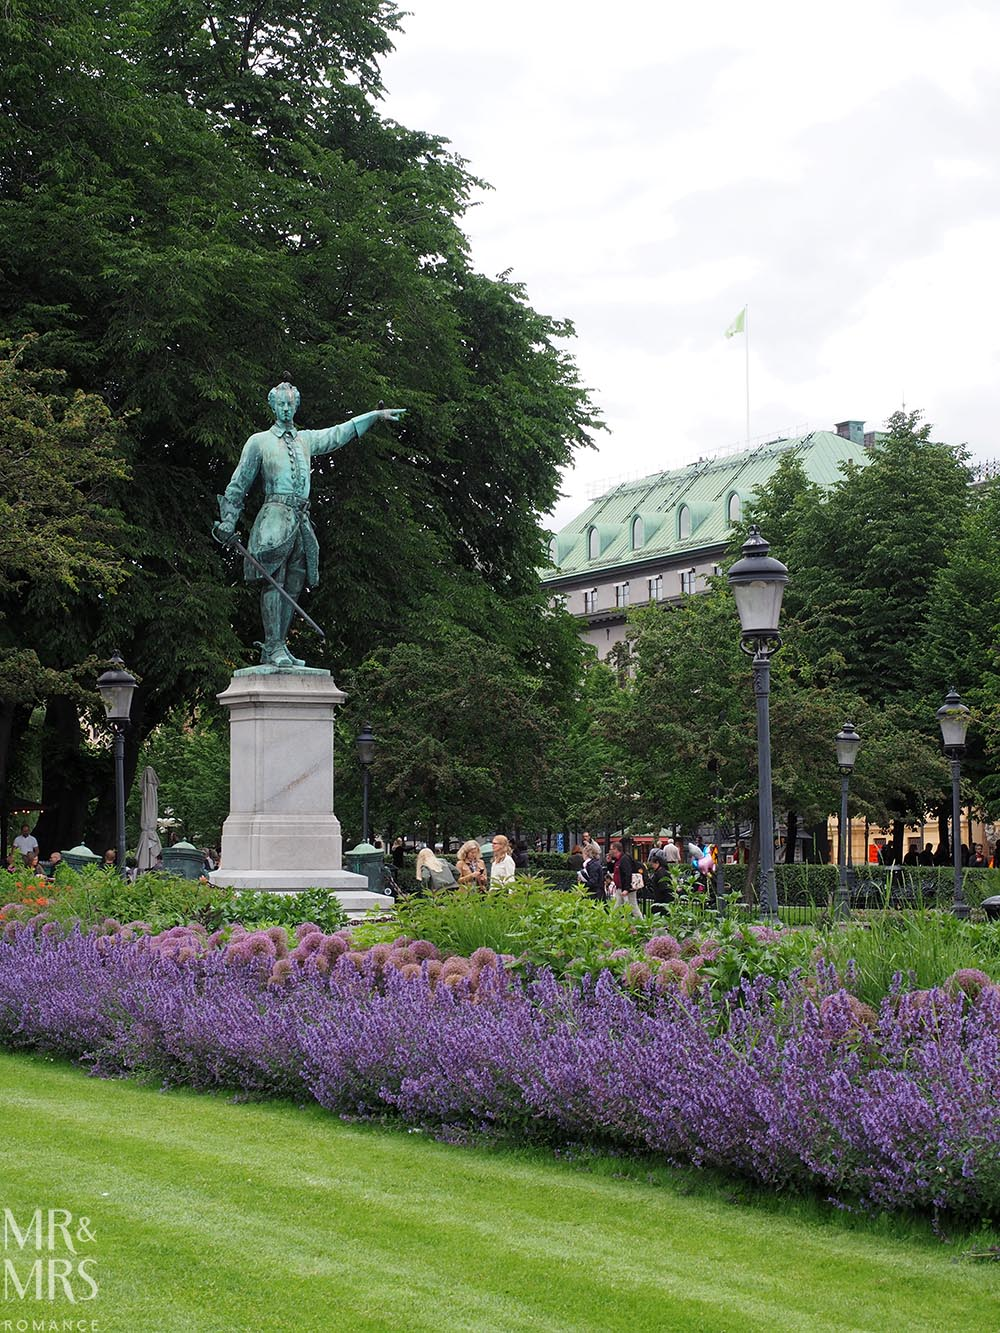 Kungstradgarden, Stockholm, Sweden - where to take photos in Stockholm - Olympus cameras - MMR